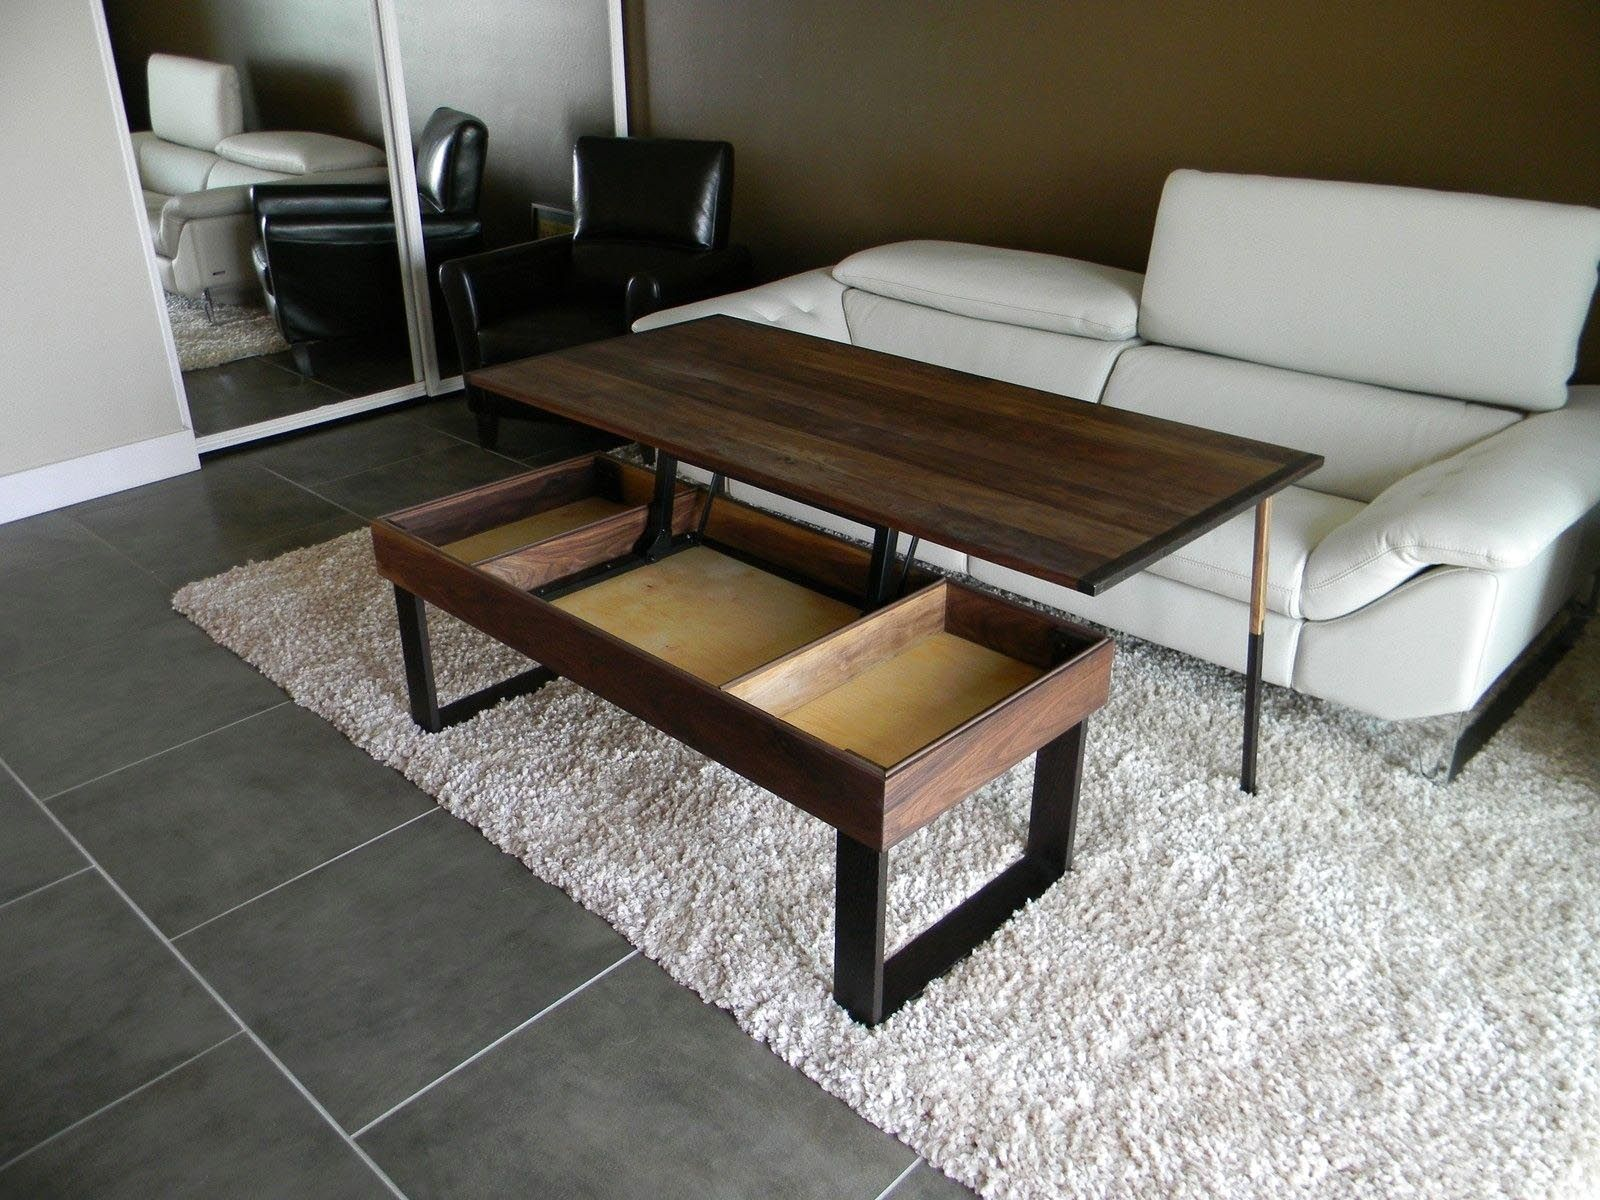 Convertible Coffee Table To Dining Table Ikea Coffee Table